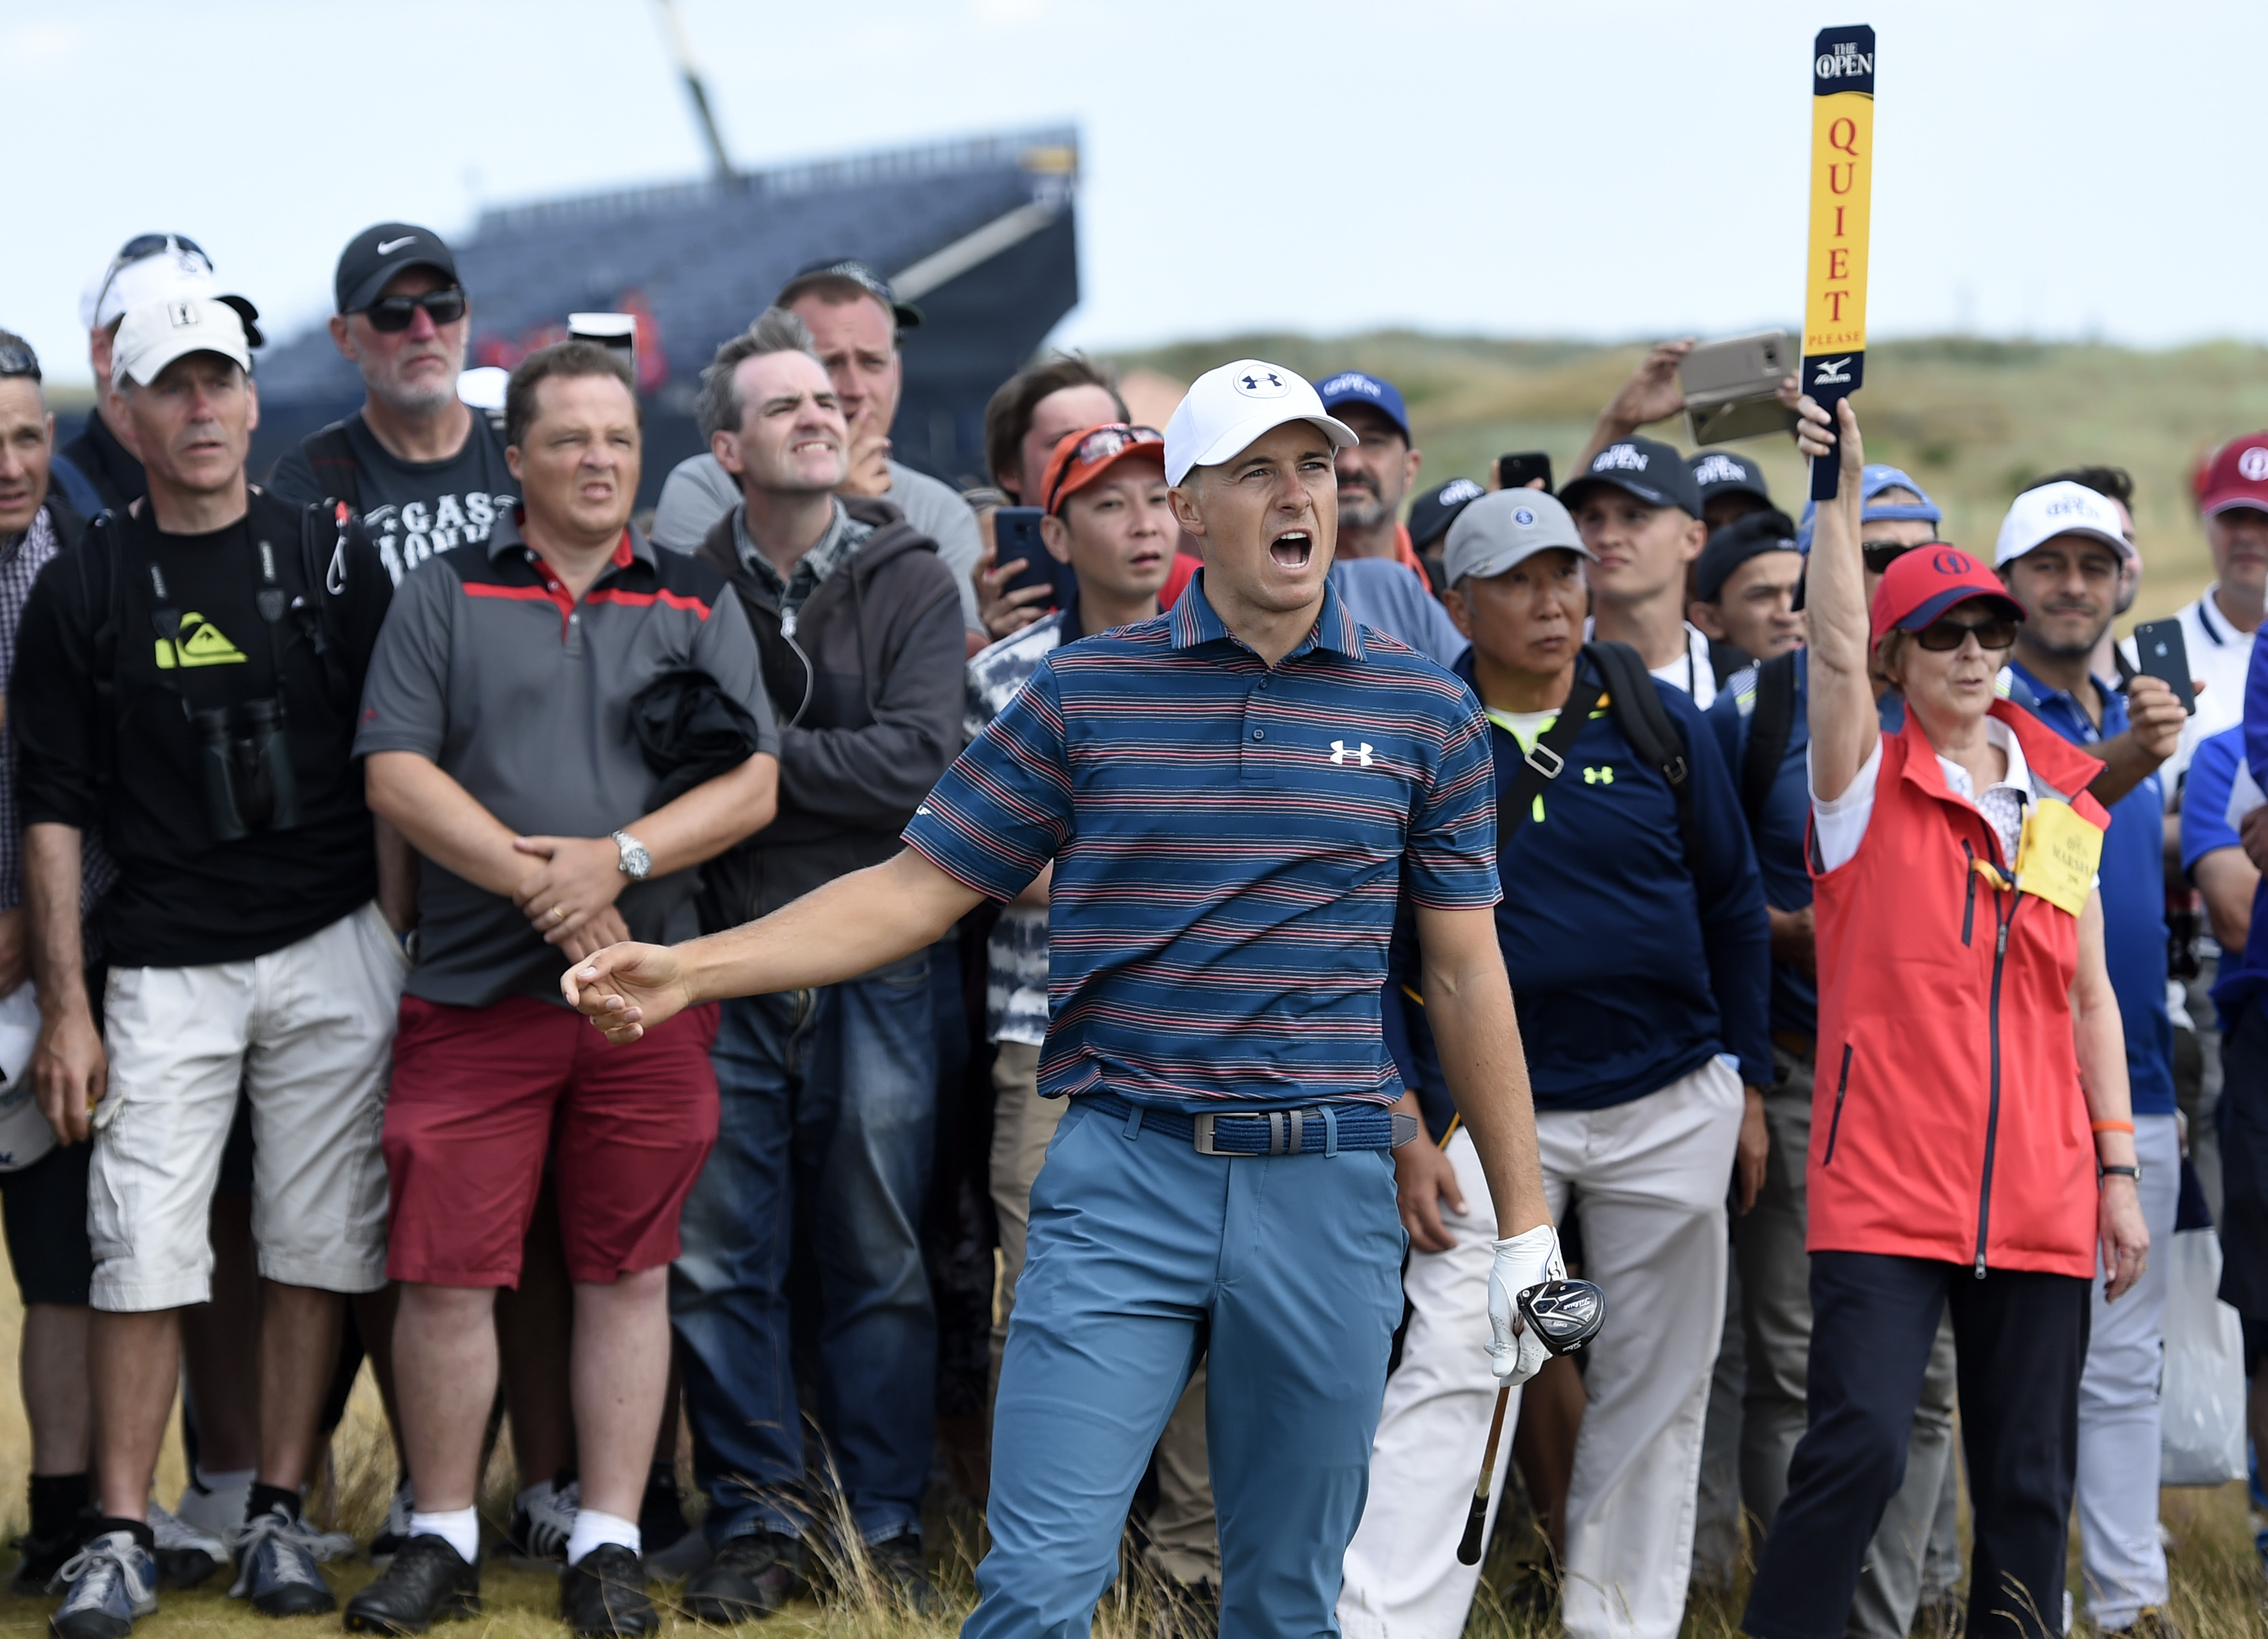 Jul 22, 2018; Carnoustie, Angus, SCT; Jordan Spieth reacts after playing a shot from the rough on the sixth hole during the final round of The Open Championship golf tournament at Carnoustie Golf Links. Mandatory Credit: Ian Rutherford-USA TODAY Sports